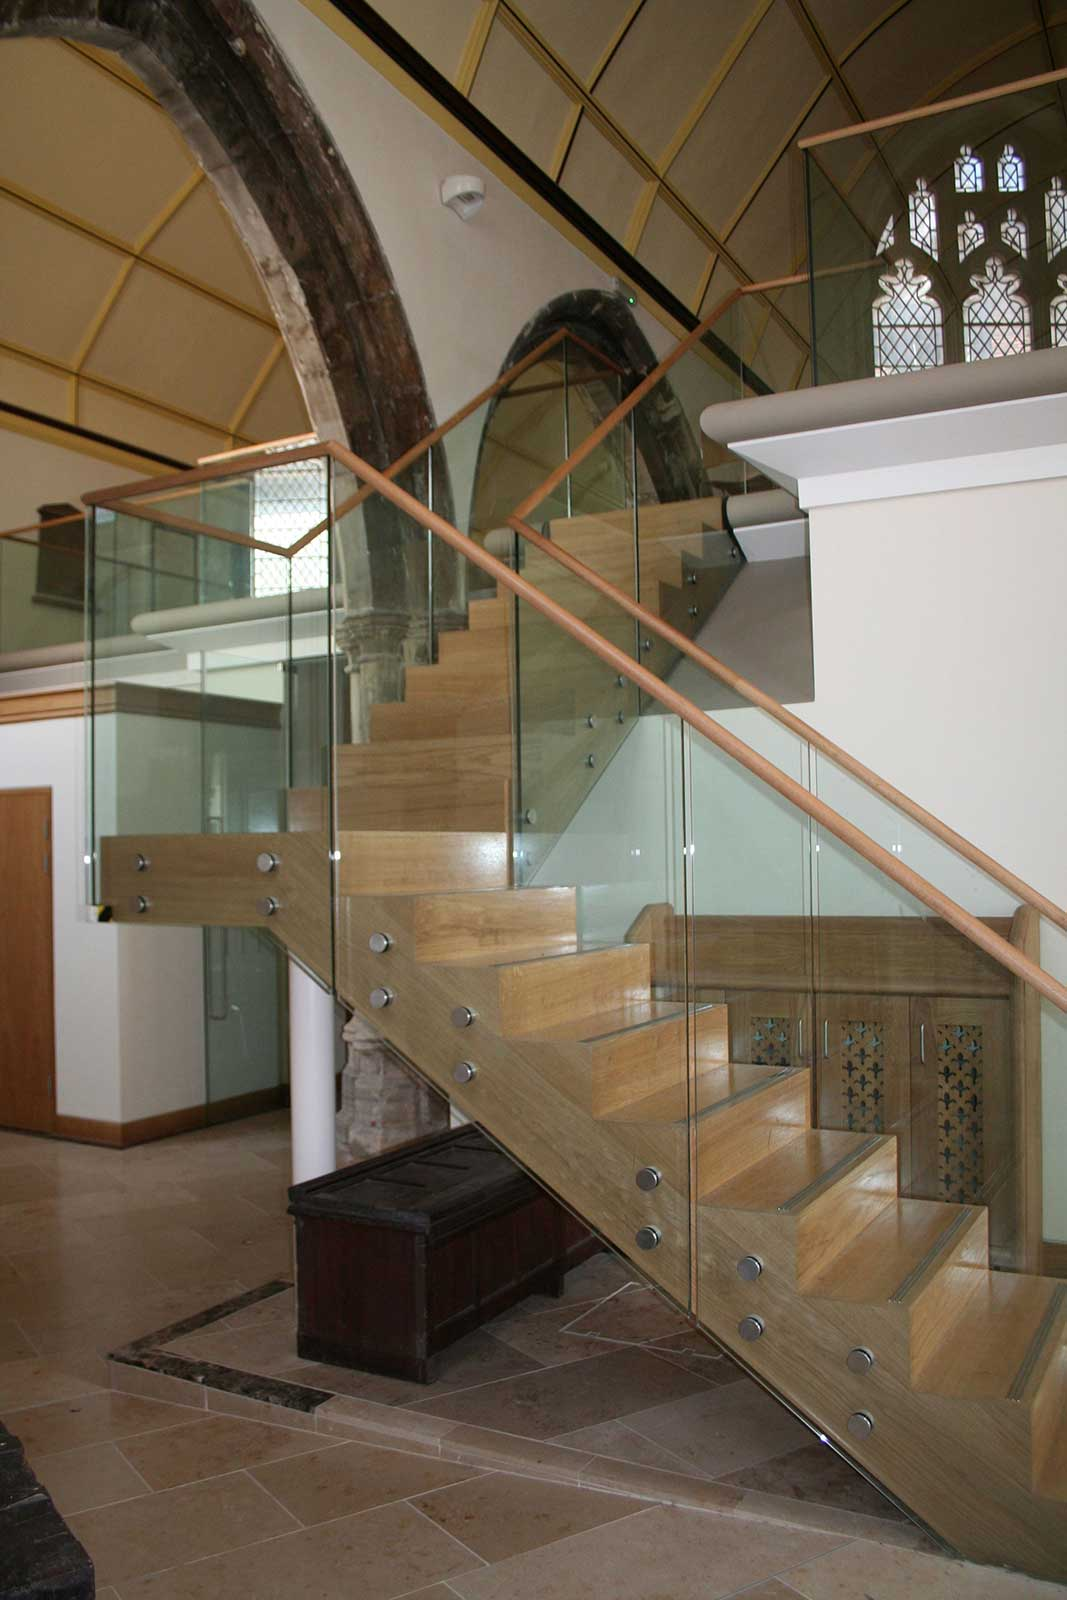 Mezzanine floor with glass balustrades